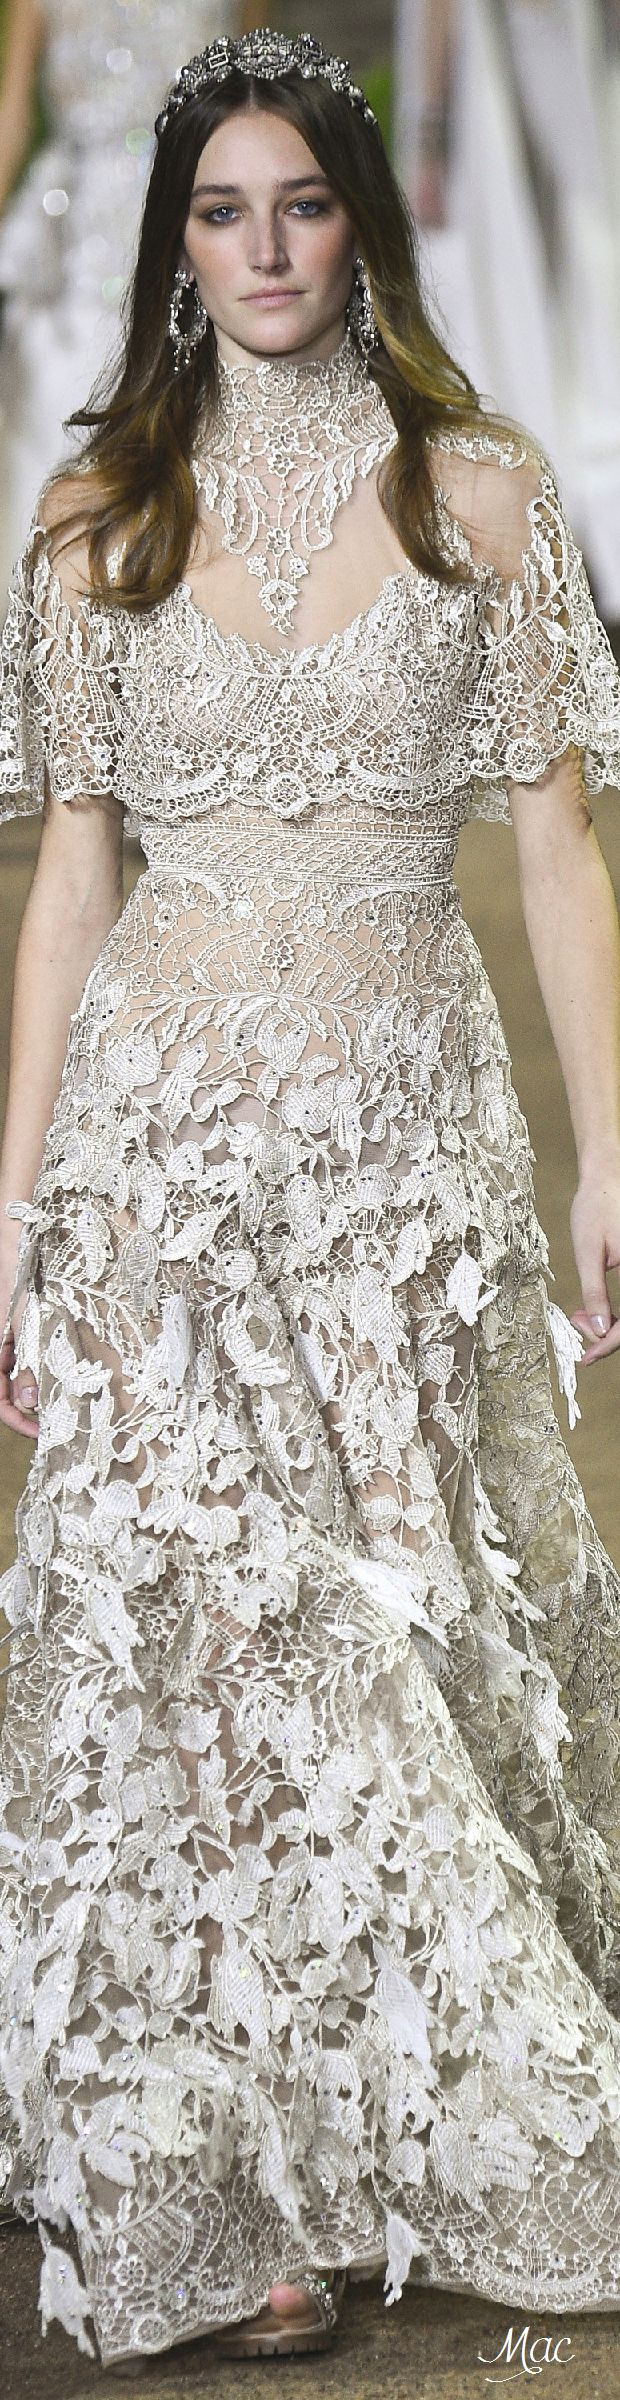 Spring 2016 Elie Saab- this is gorgeous but for me the skirt from the waist down doesn't fit the elegance of the top. Love both but they just don't fit together.